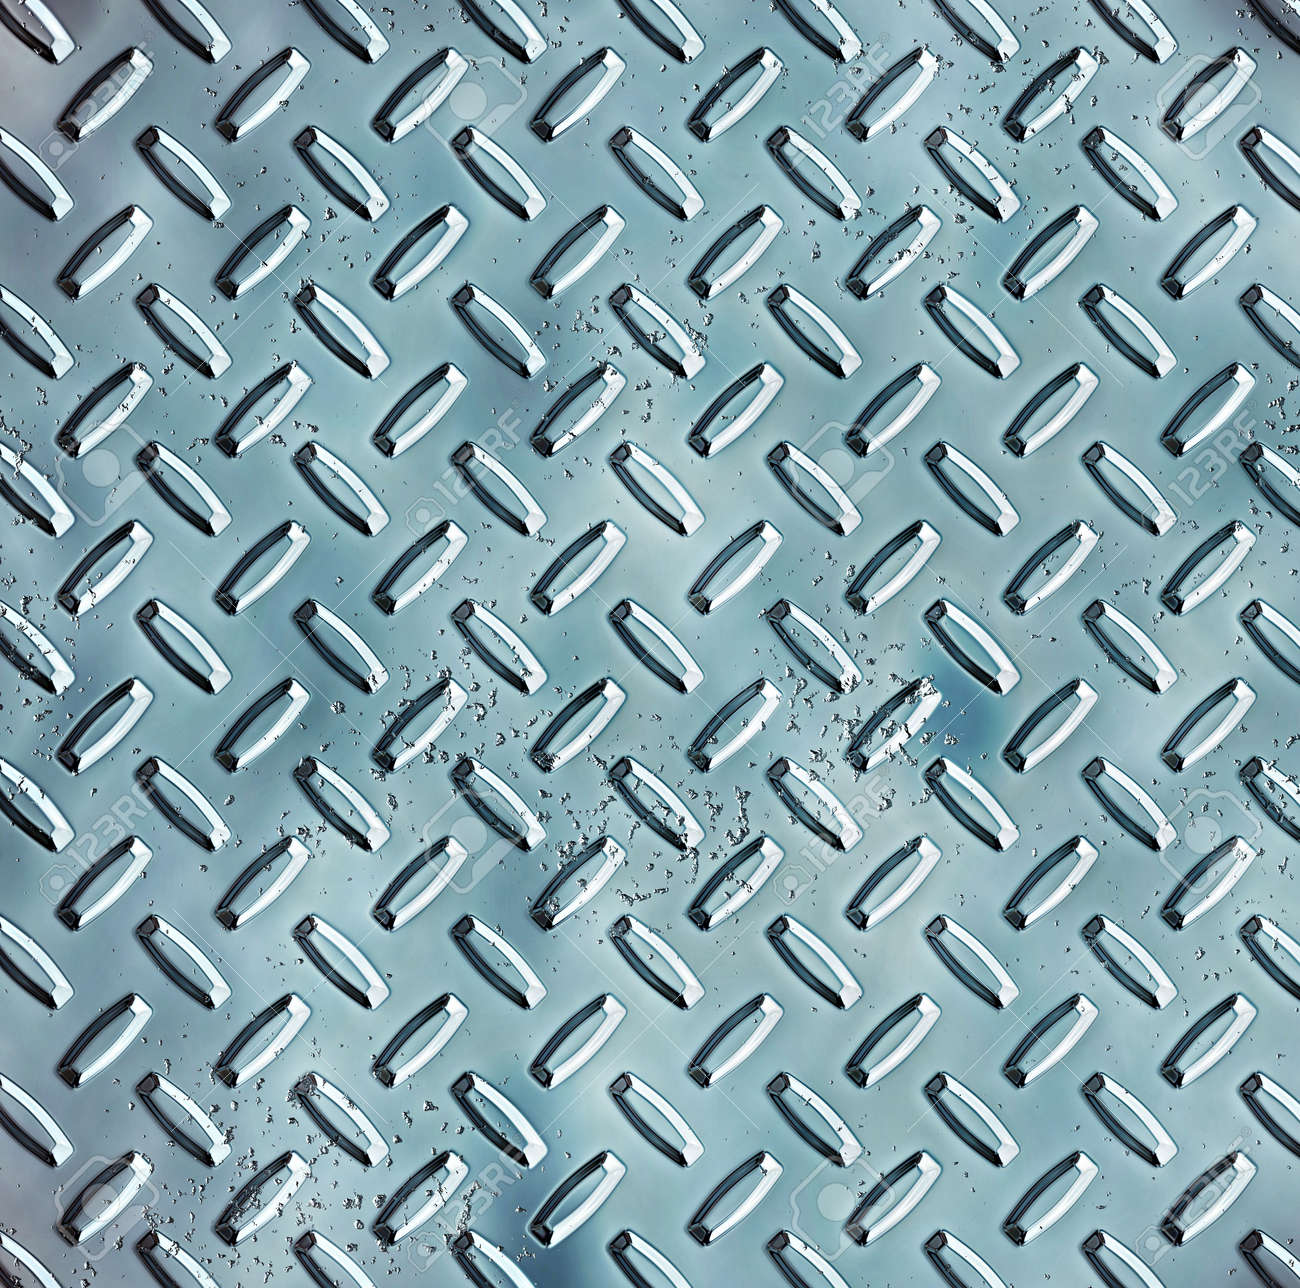 a large sheet of rough and pitted blue steel diamond or tread plate Stock Photo - 1066995